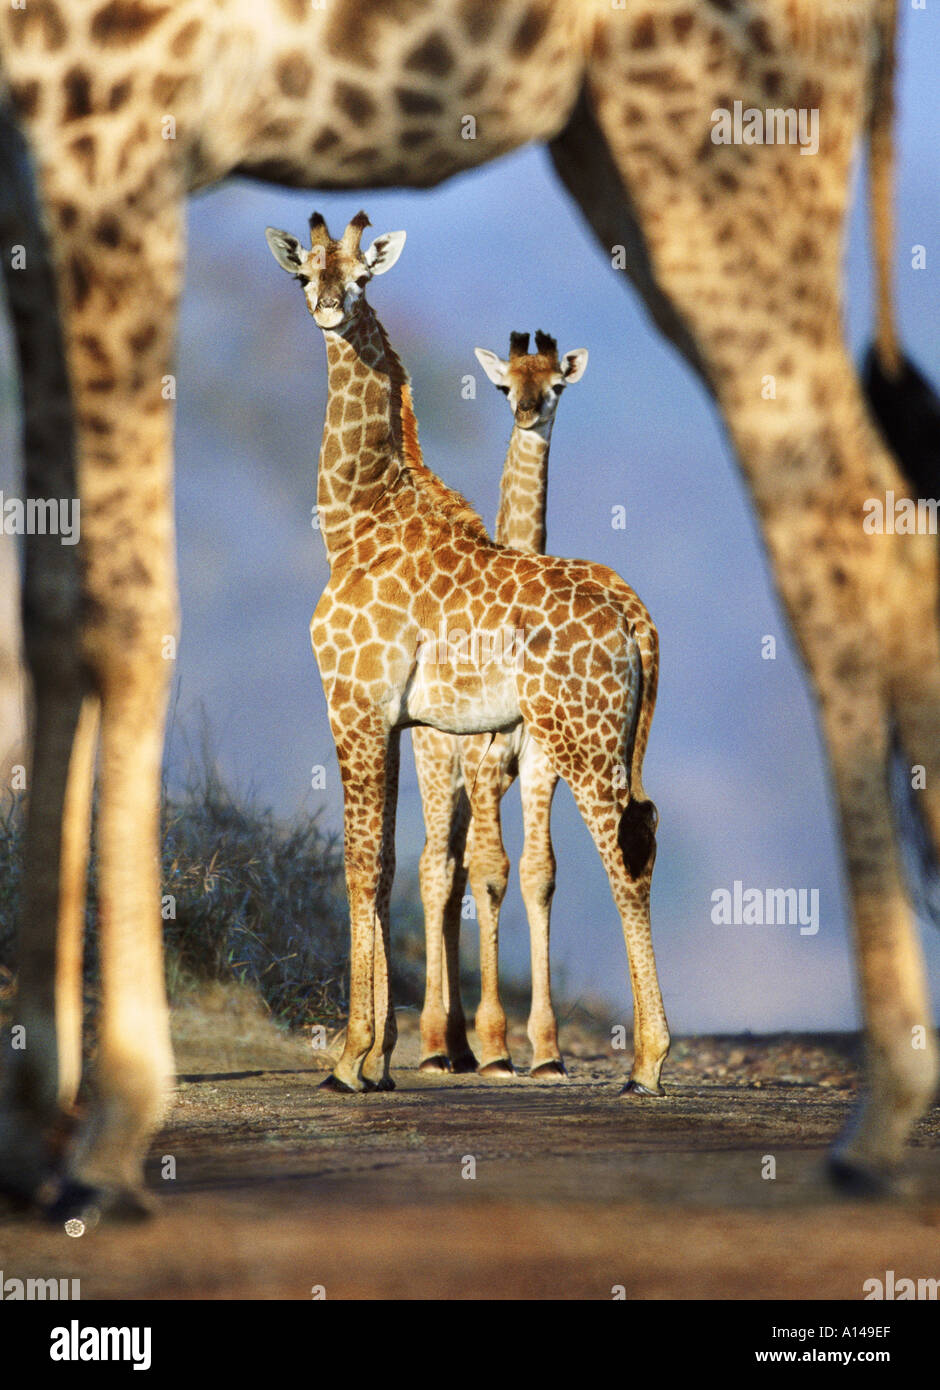 Giraffes framed by the legs of another giraffe South Africa - Stock Image